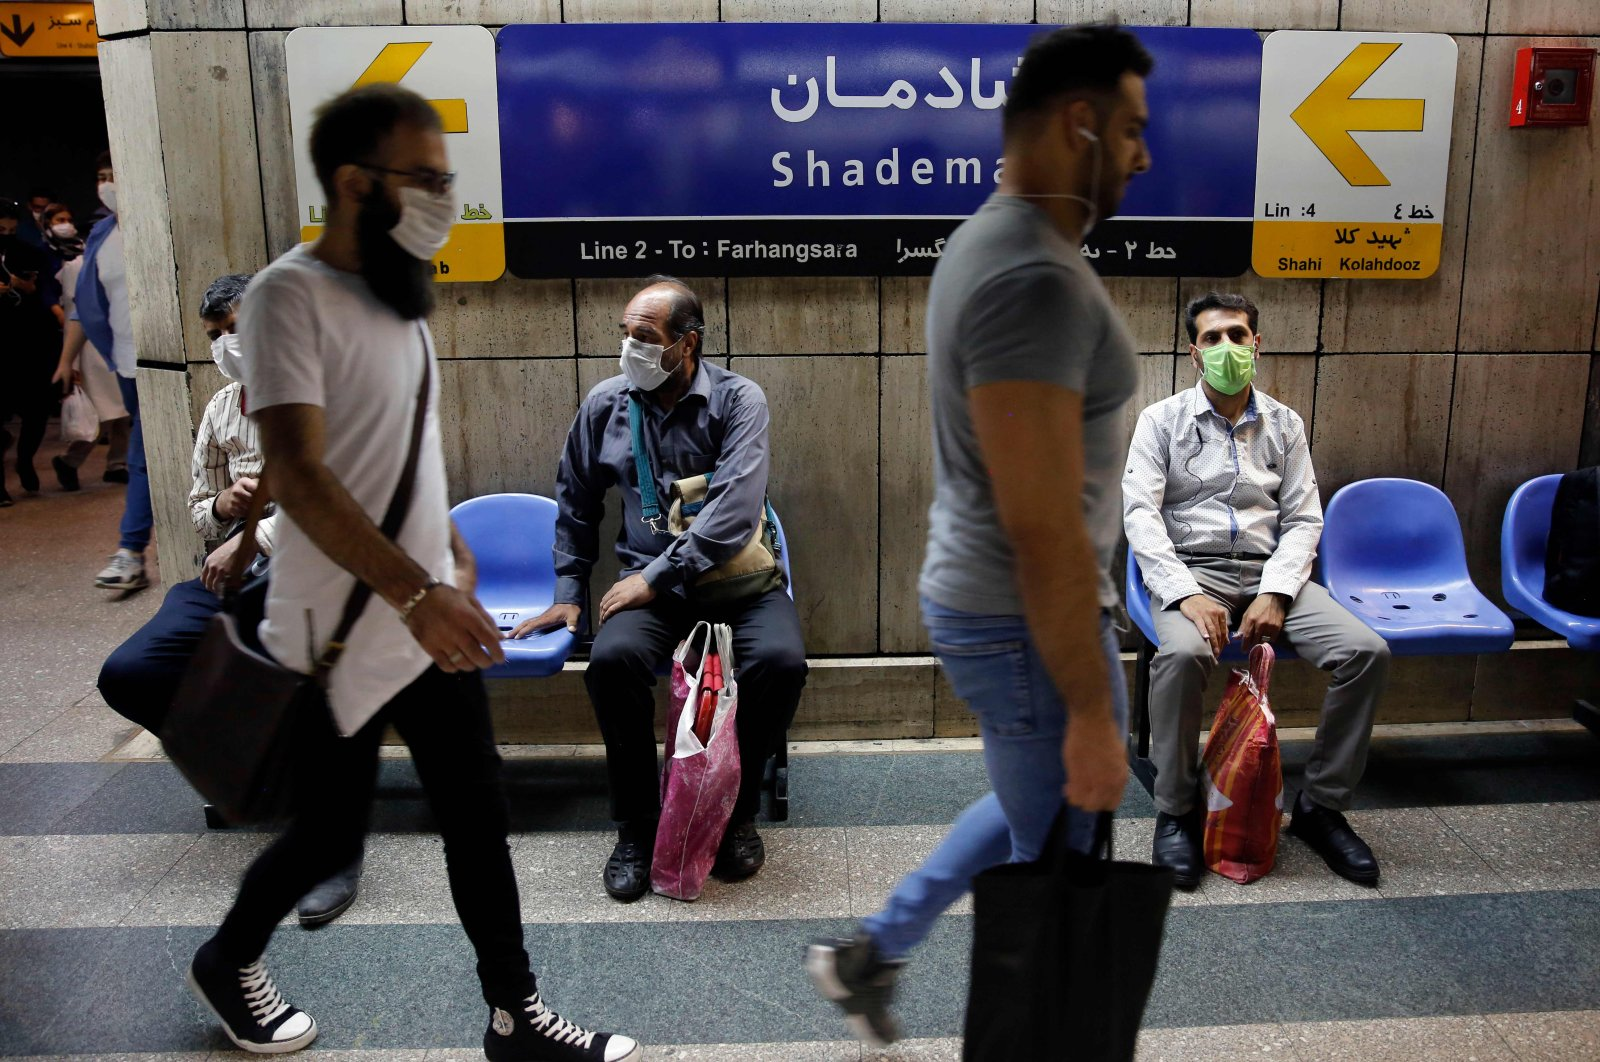 Iranians wearing face masks are pictured in a subway station in the capital Tehran on June 10, 2020. (AFP Photo)